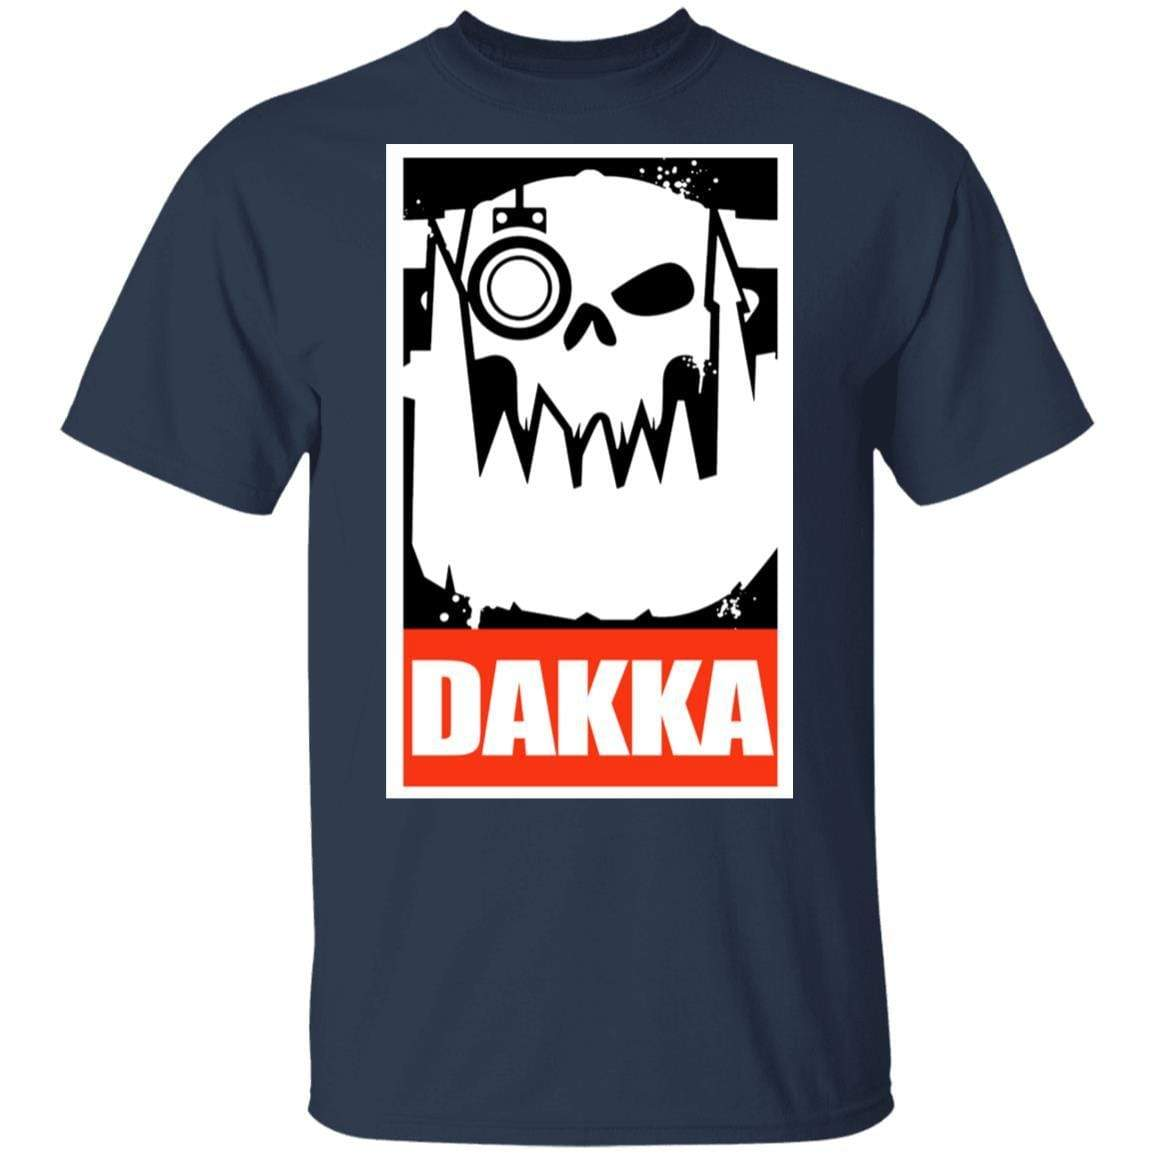 Orks Dakka Tabletop Wargaming And Miniatures Addict T-Shirts, Hoodies 1049-9966-88767417-48248 - Tee Ript